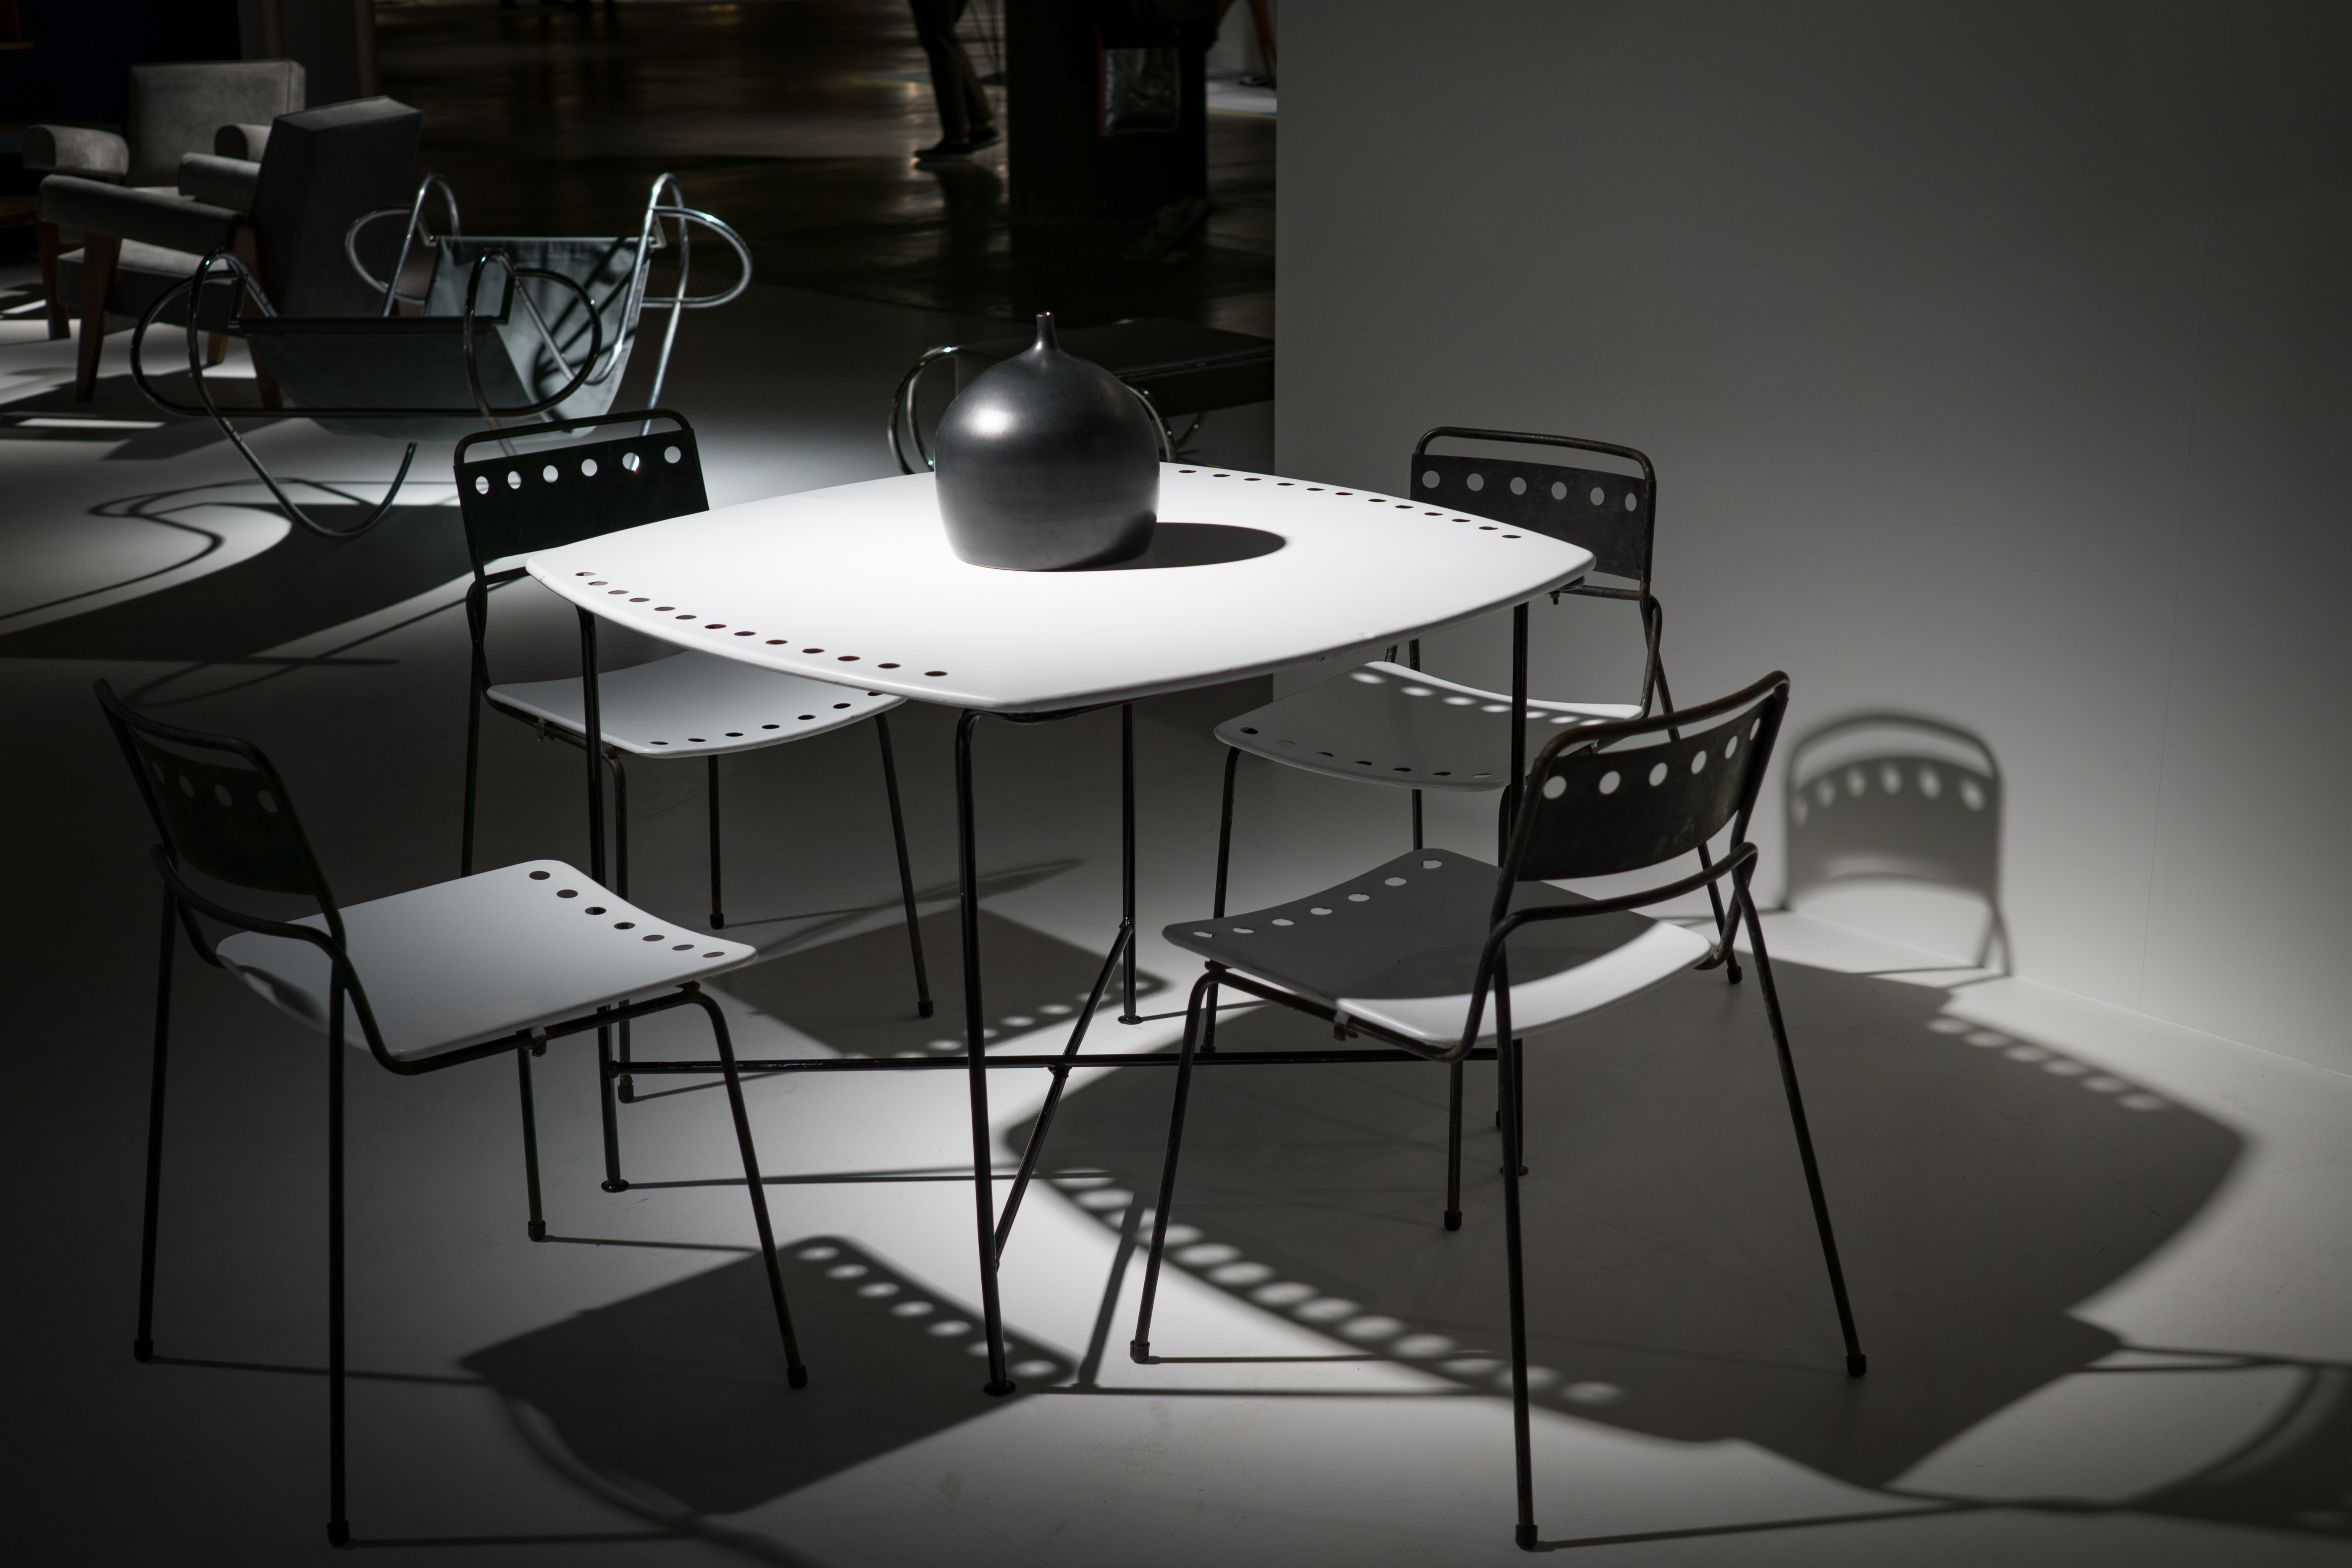 Free stock photo of light, black-and-white, desk, table